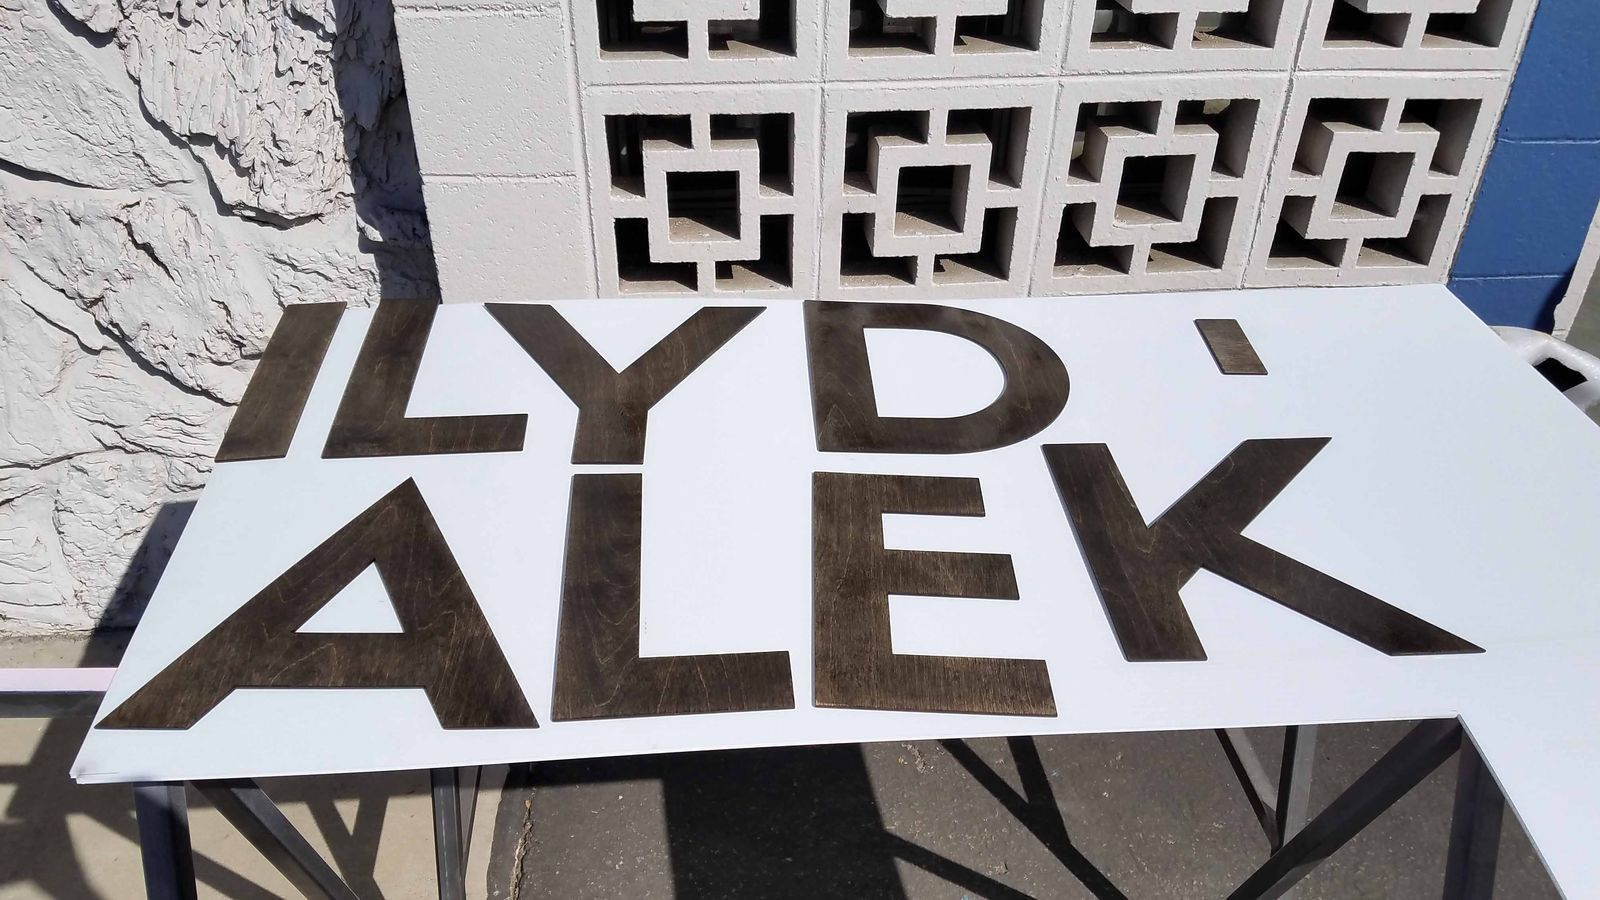 custom cut wooden letters